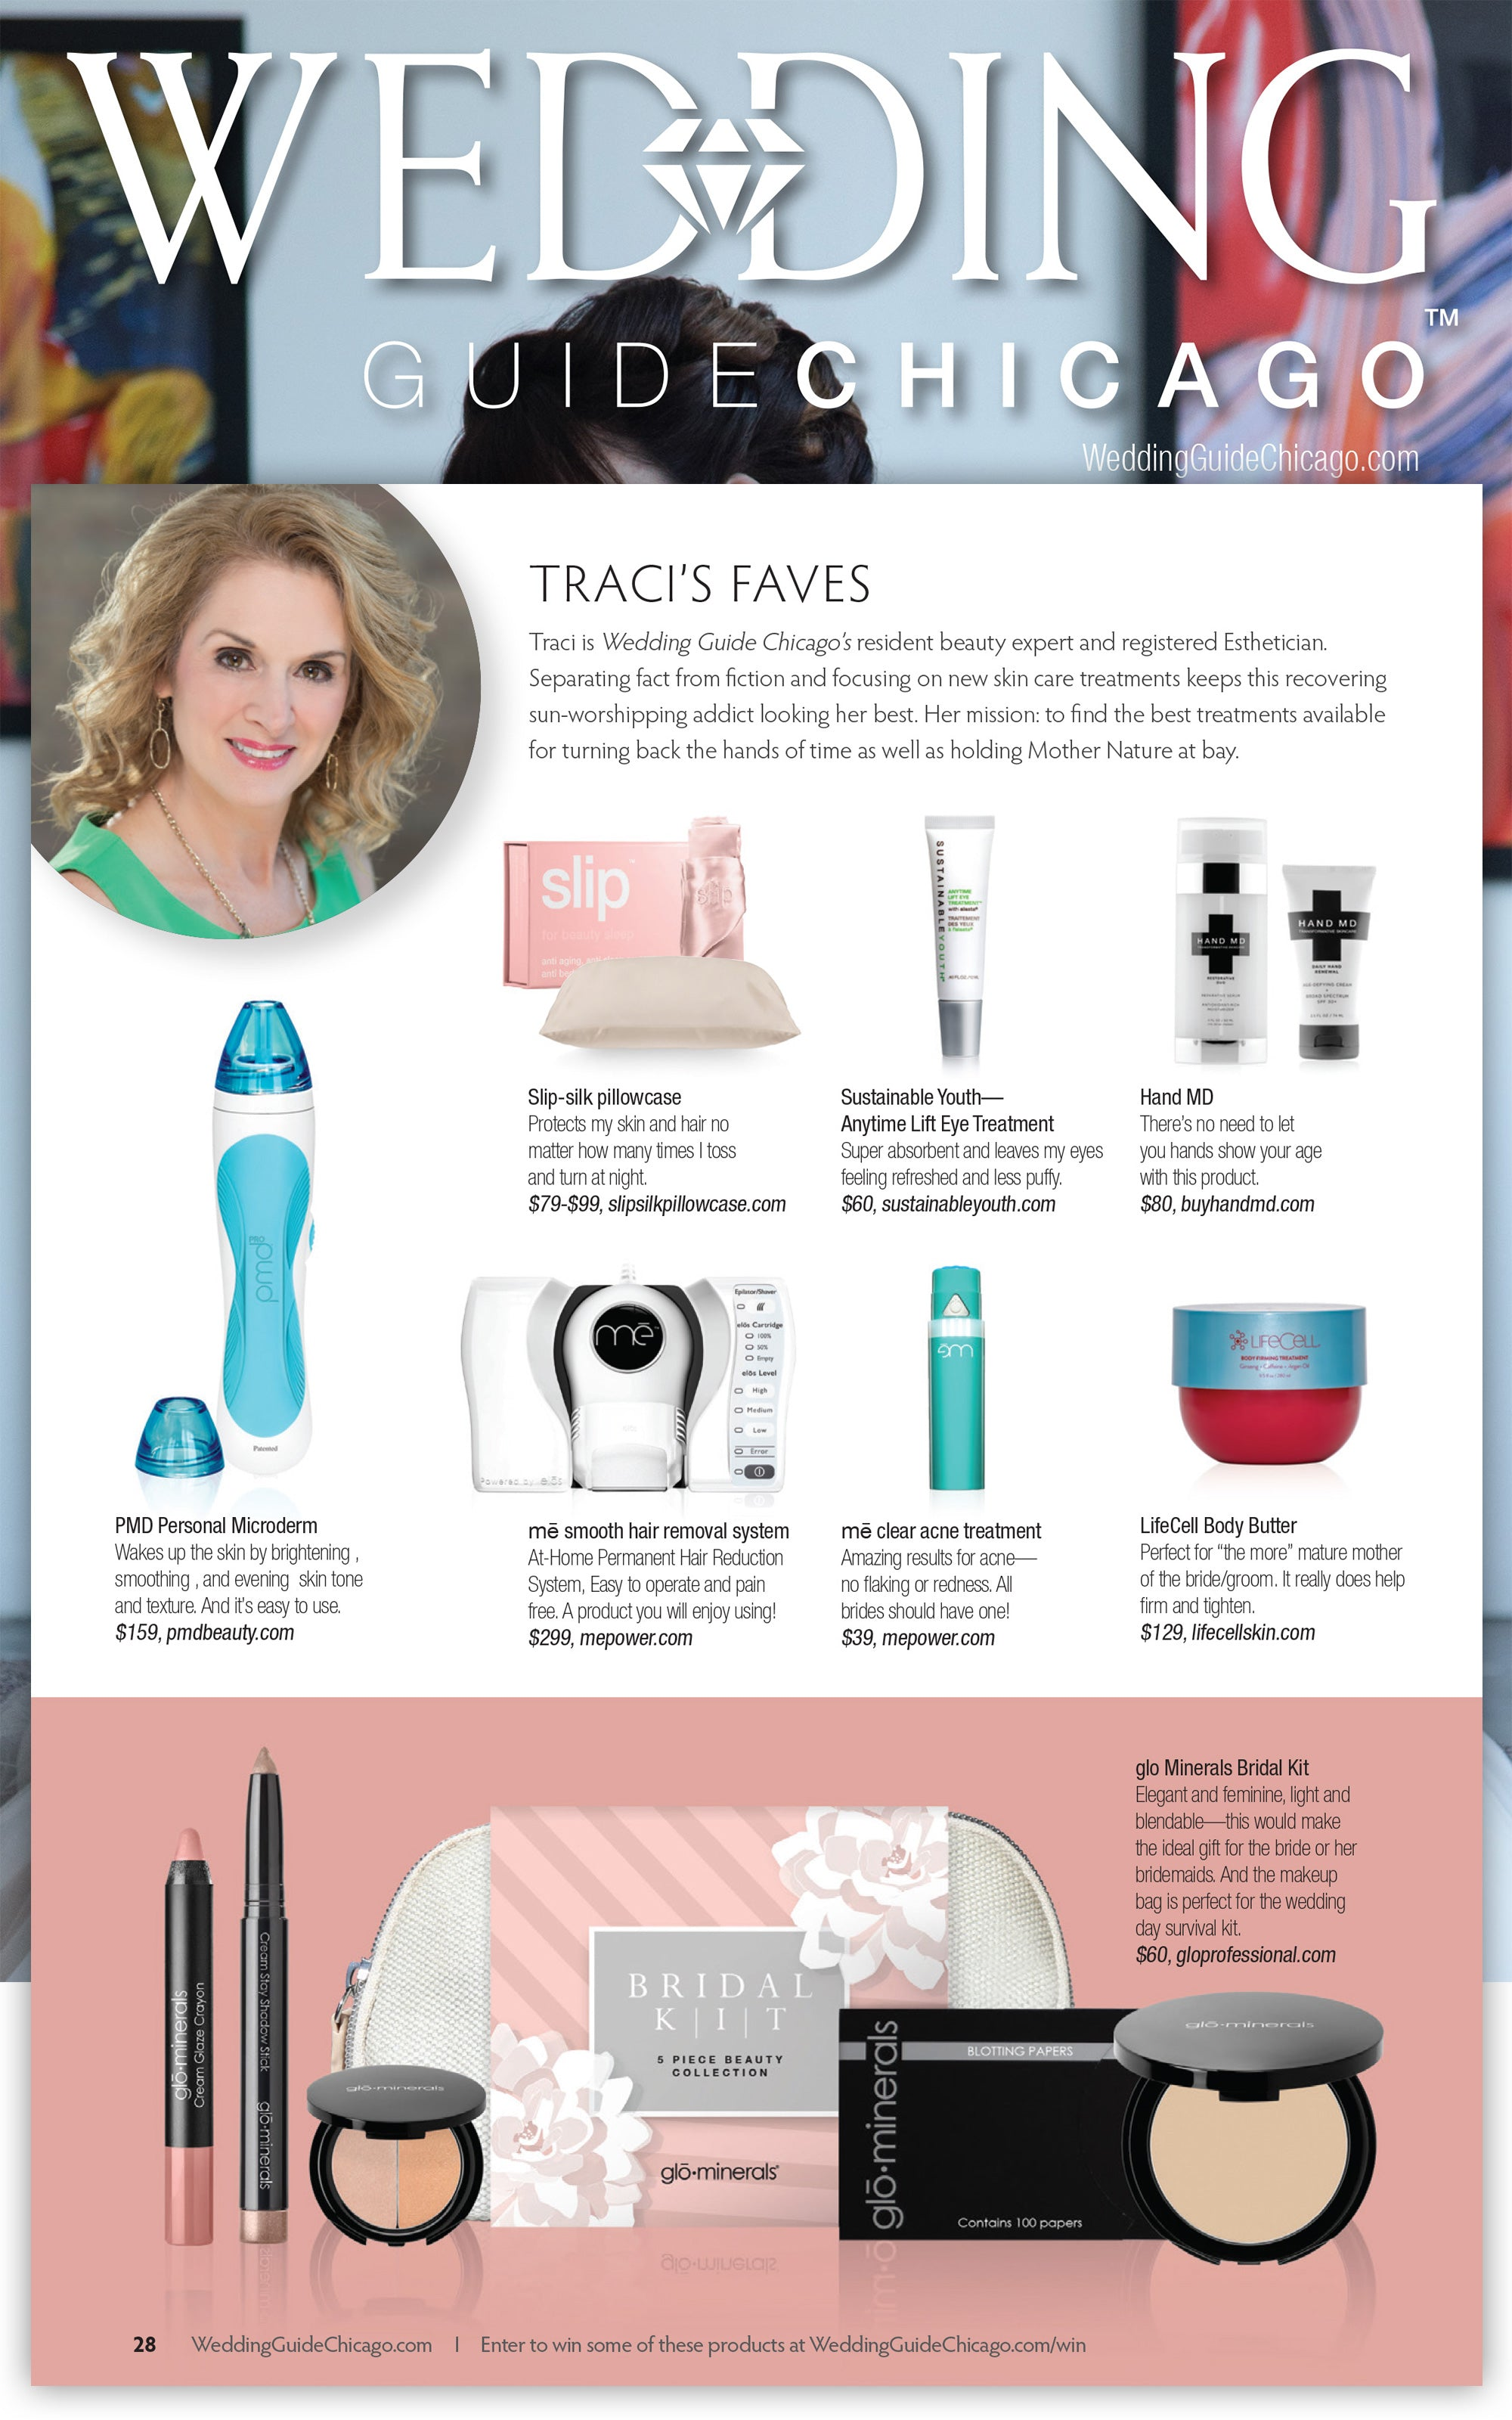 Sustainable Youth Anytime Lift Eye Treatment featured in Wedding Guide Chicago, Winter/Spring 2017